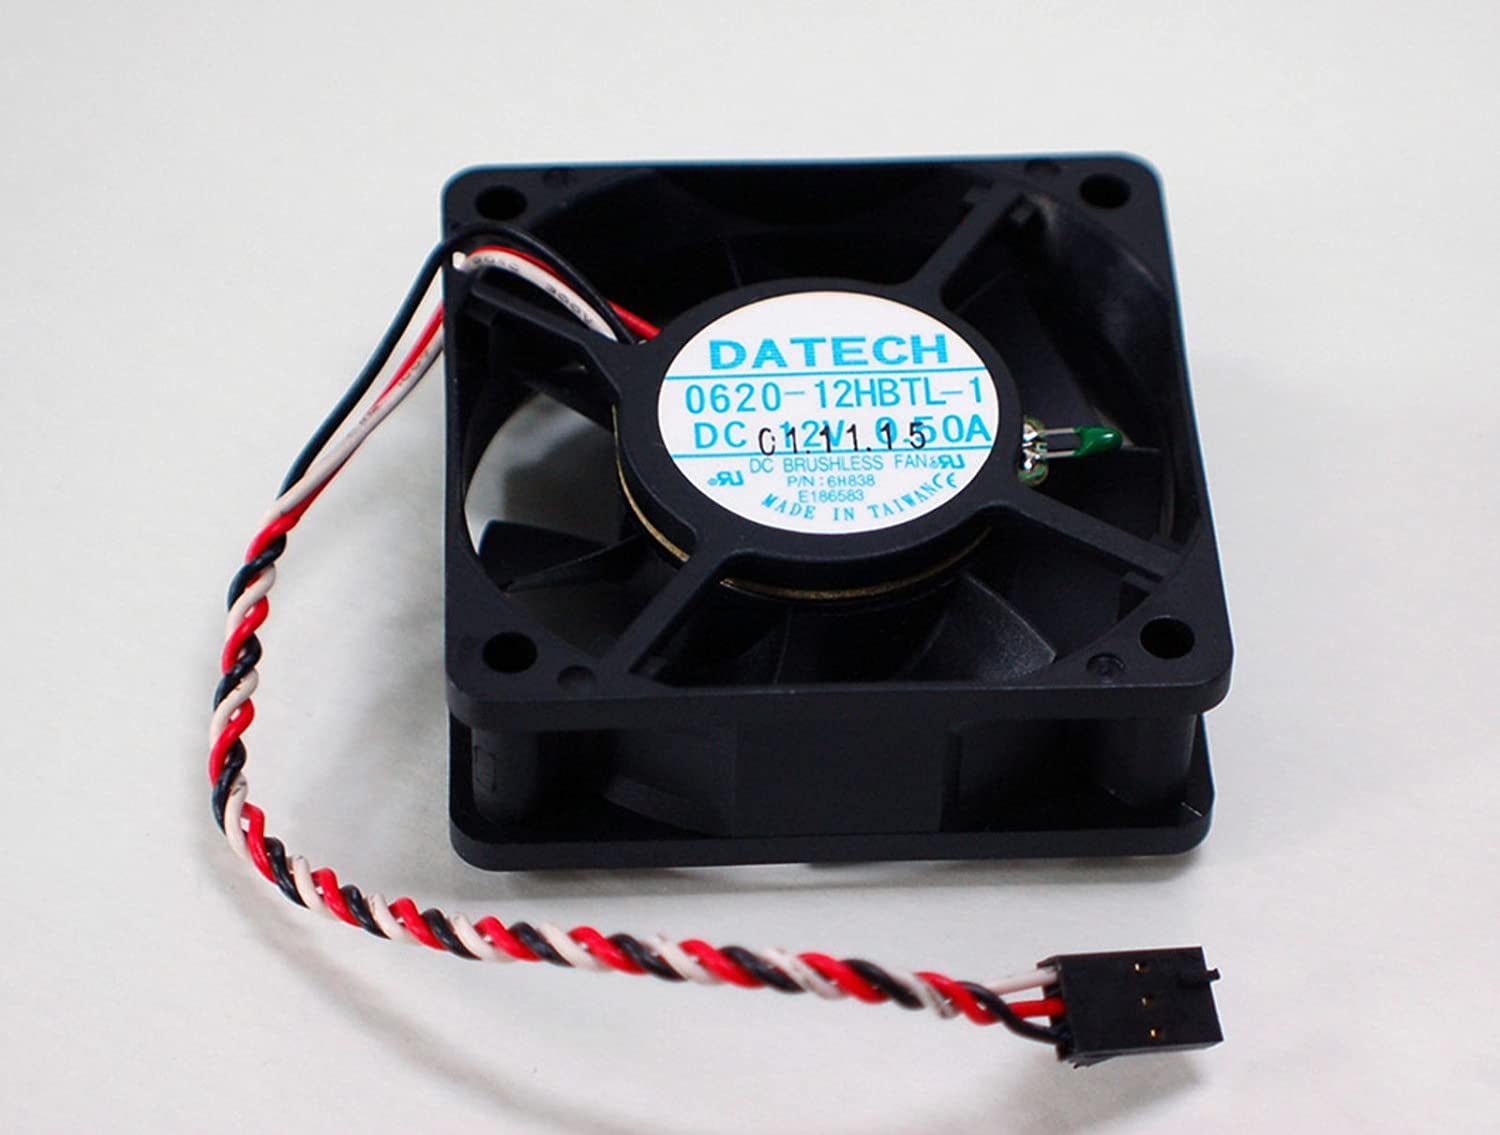 Aquamoon Trading 6H838 Genuine OEM Dell Optiplex GX50 GX150 Brushless 0620-12HBTL-1 0.50A CPU Cooling Fan 12V 60mm 2408NL-04W-B46 Black w/3-Pin Red/Black/White Cable Assembly